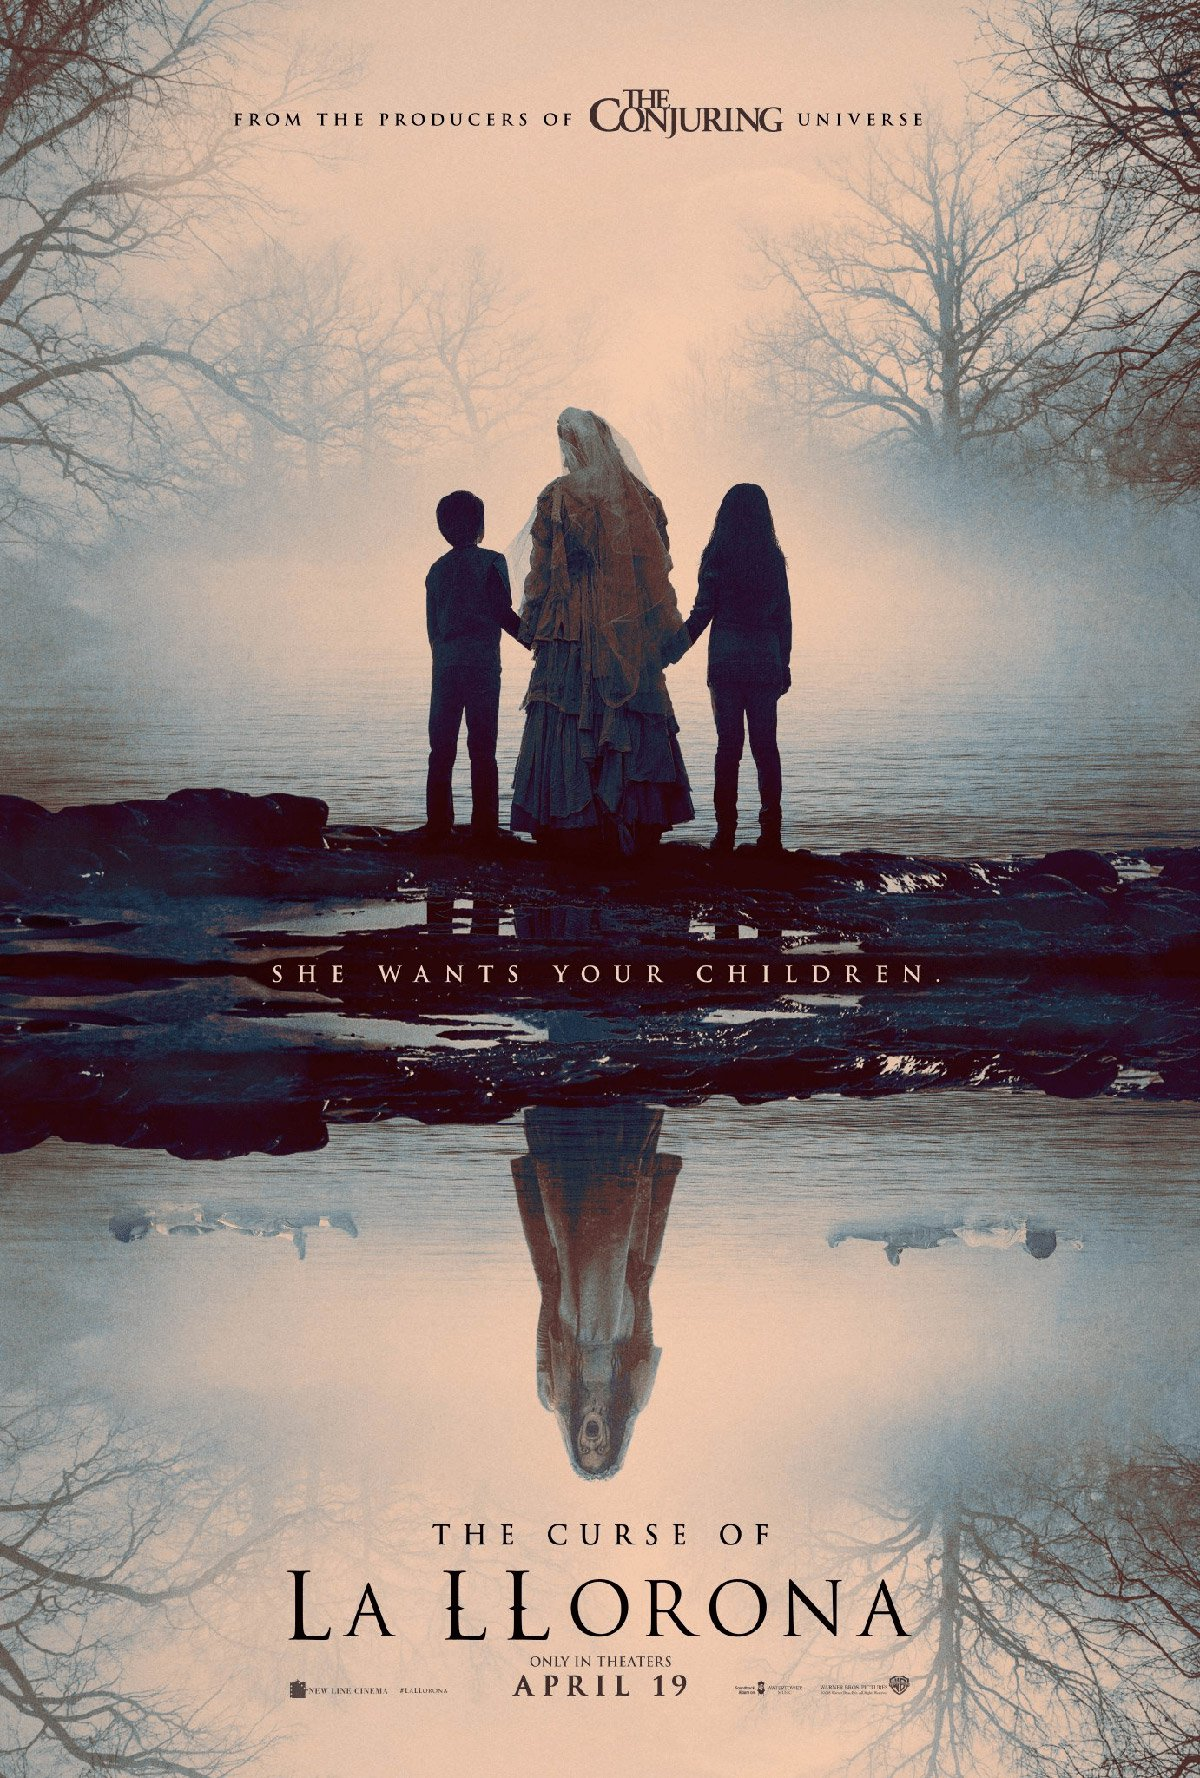 eerie-poster-released-for-the-james-wan-produced-horror-film-the-curse-of-la-llorna3